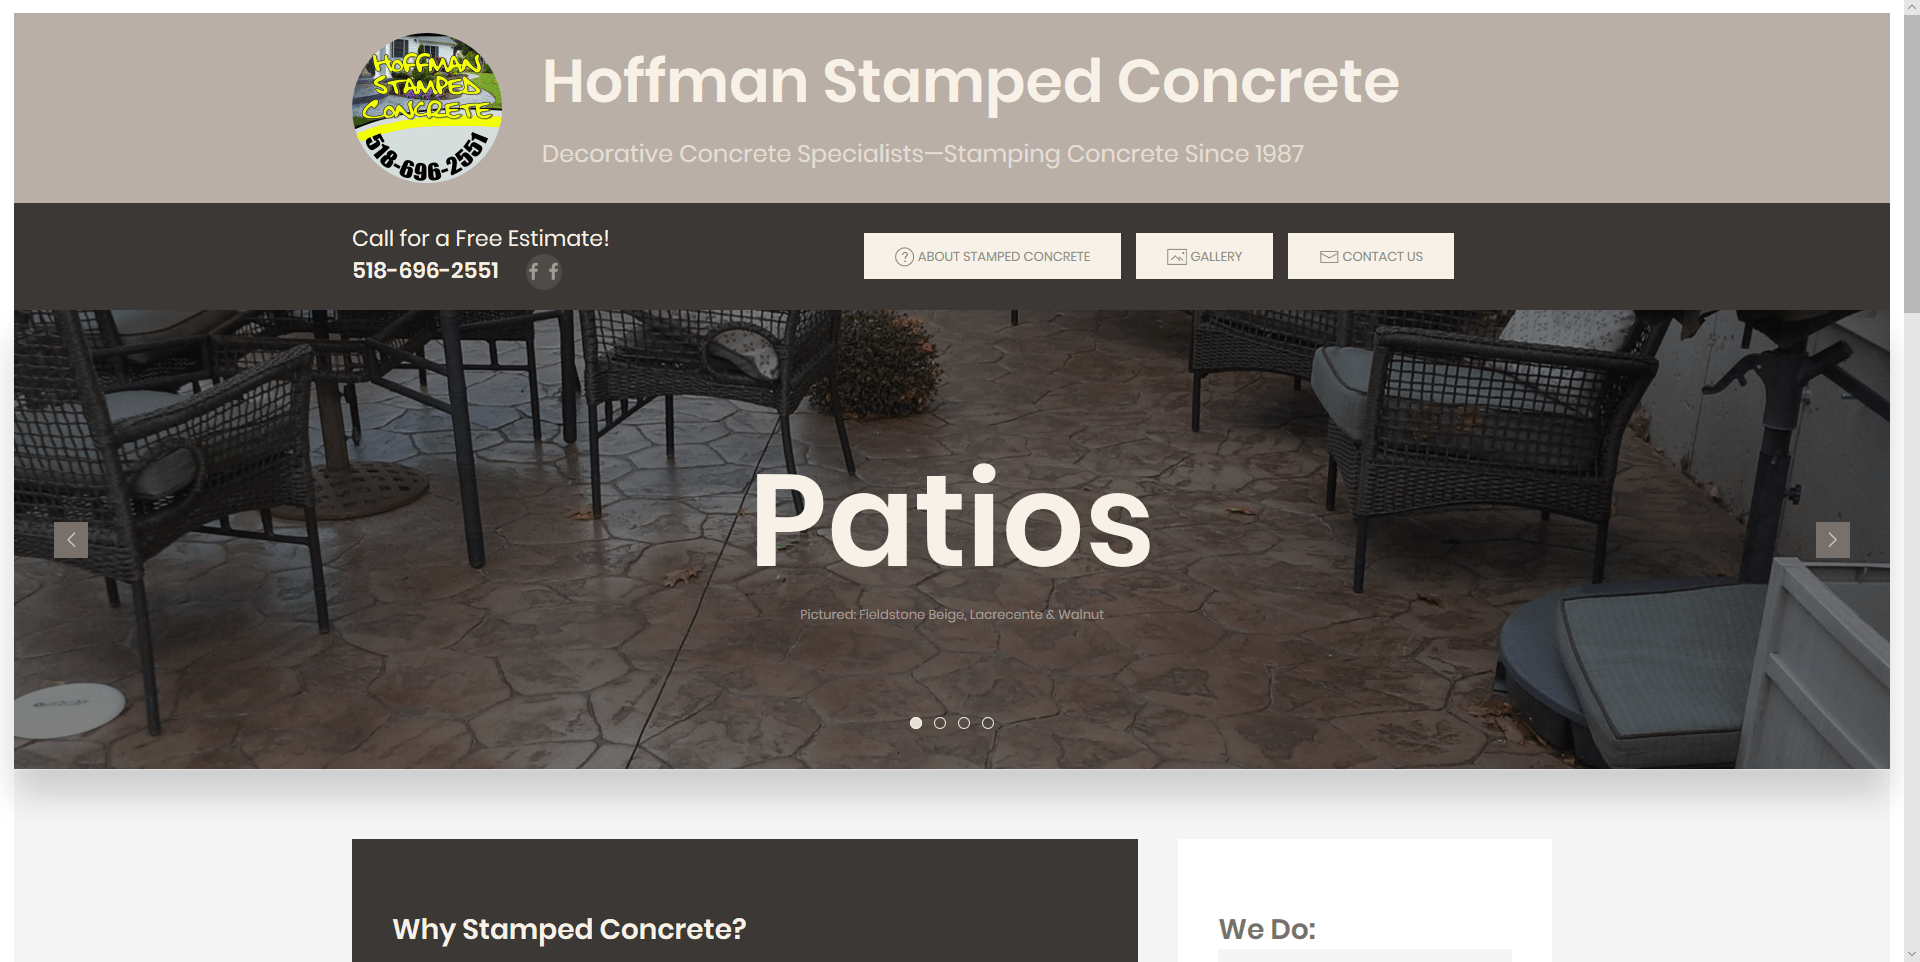 Hoffman Stamped Concrete